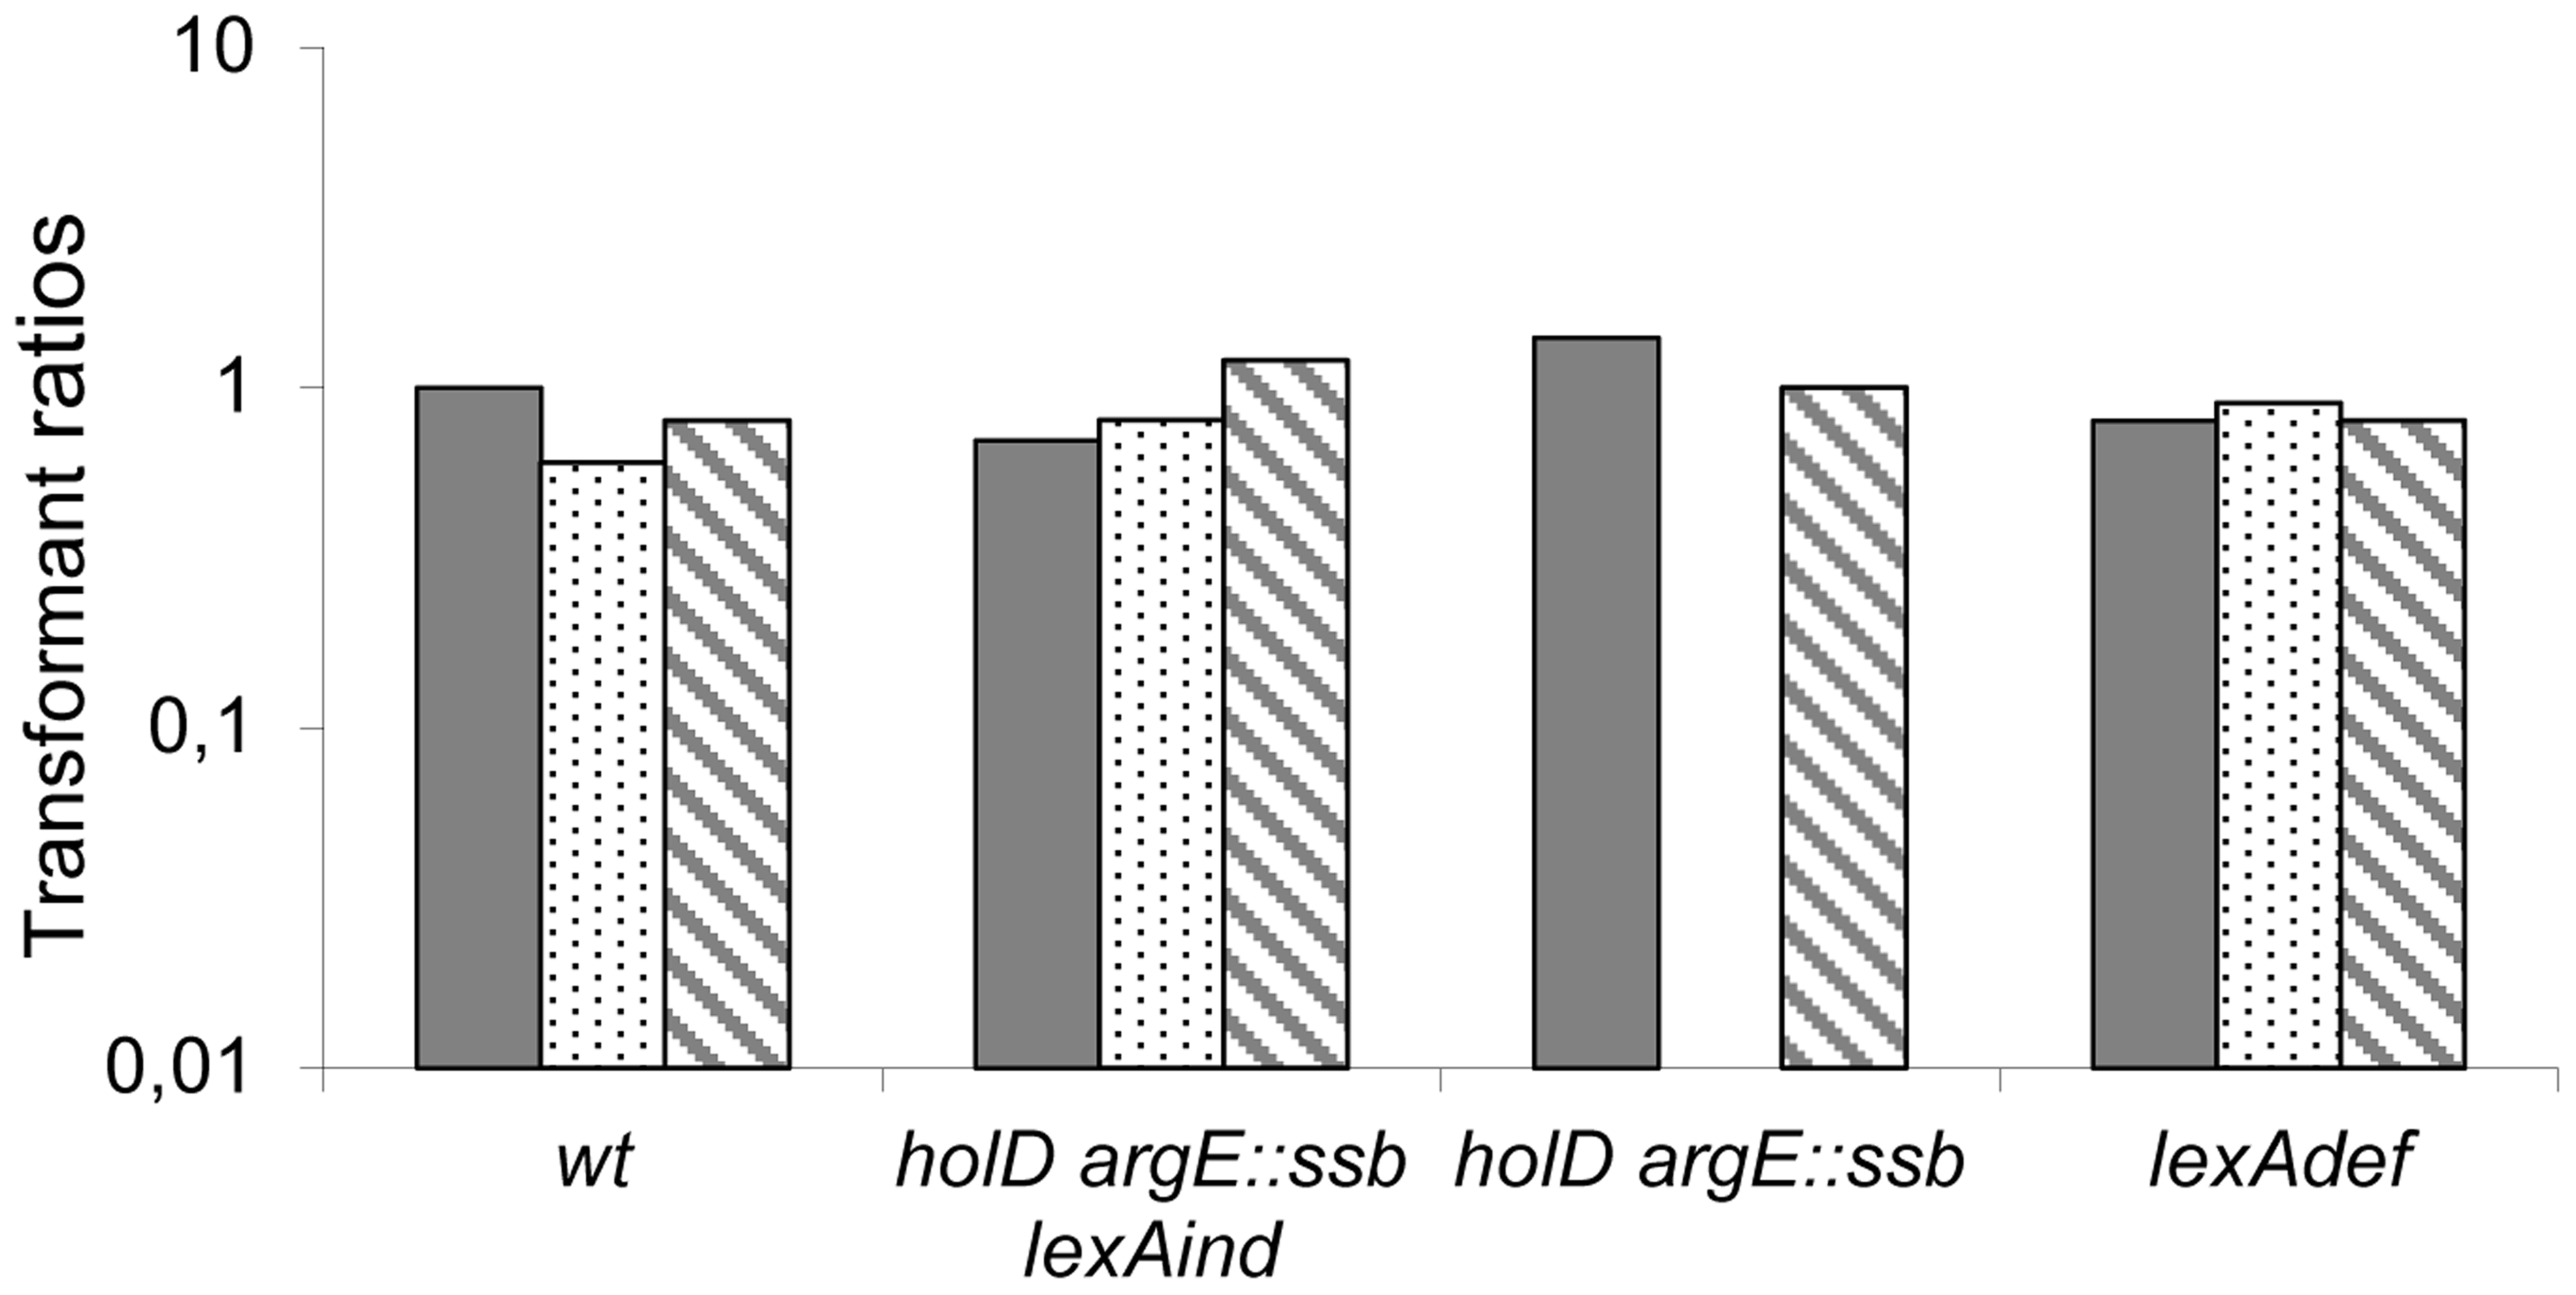 pGB-<i>dinB</i> is lethal to Δ<i>holD argE::ssb</i> only when the SOS response is induced.